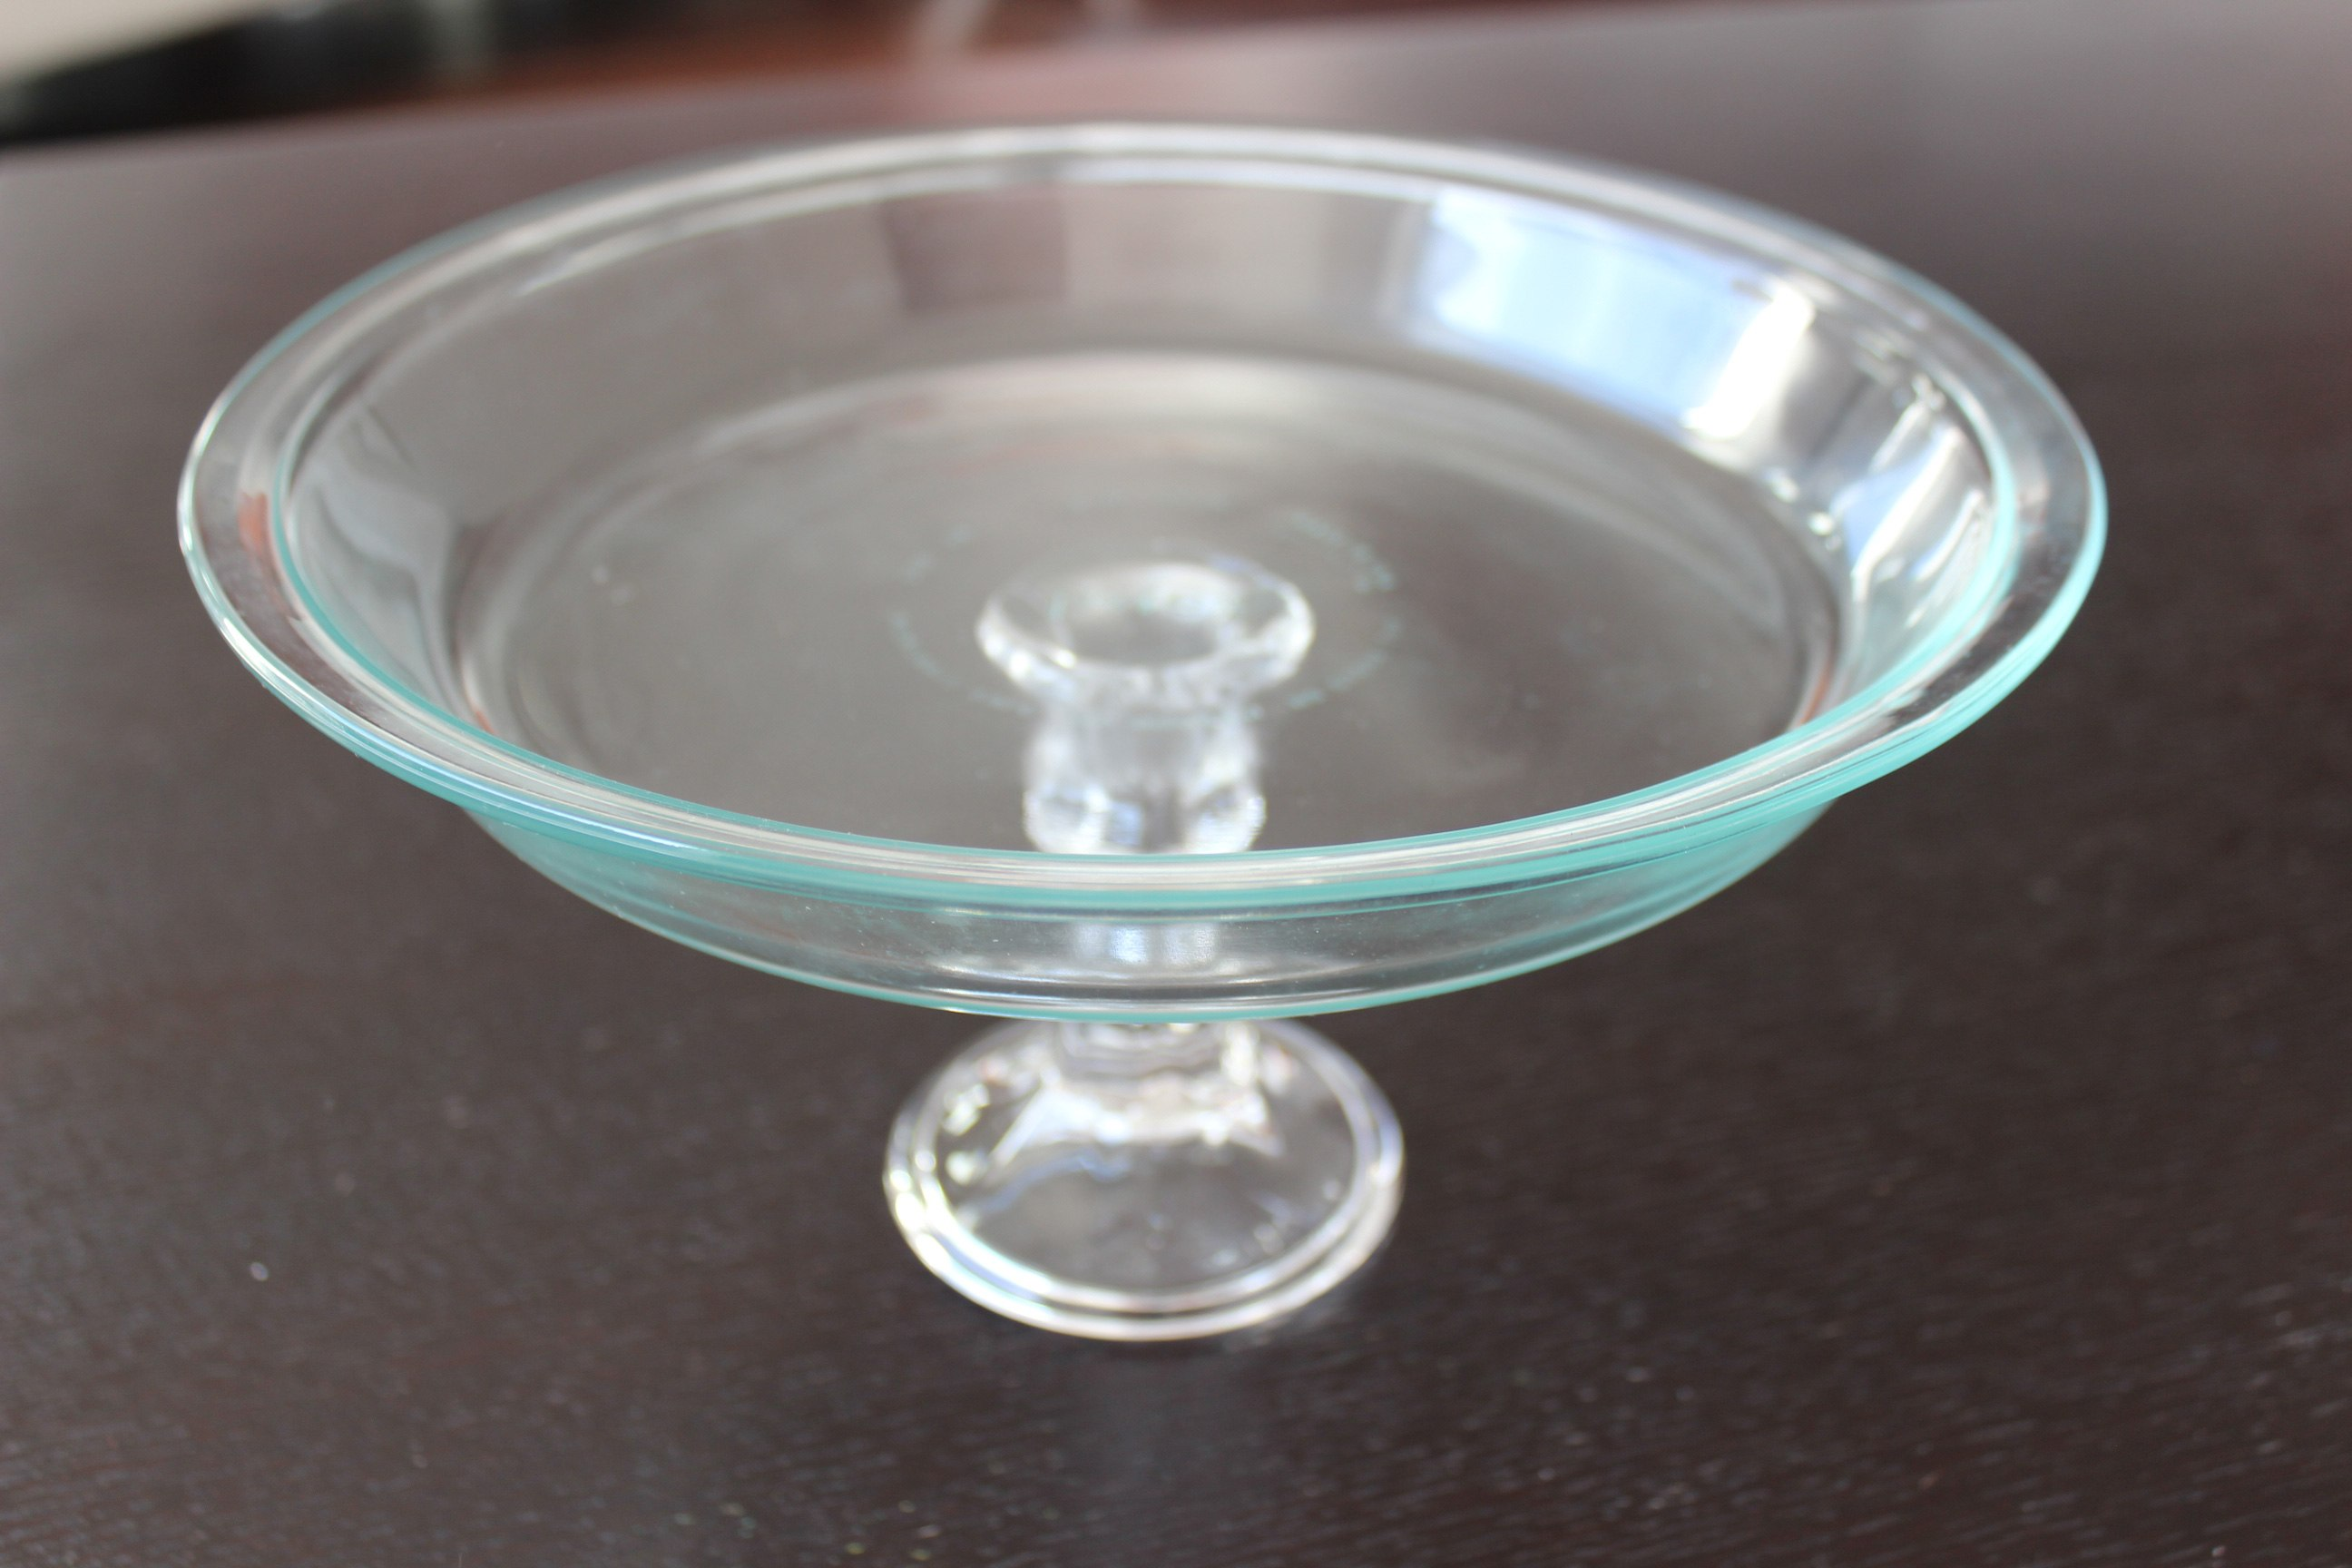 Diy how to make a pedestal cake stand for under 10 for Plate cake stand diy